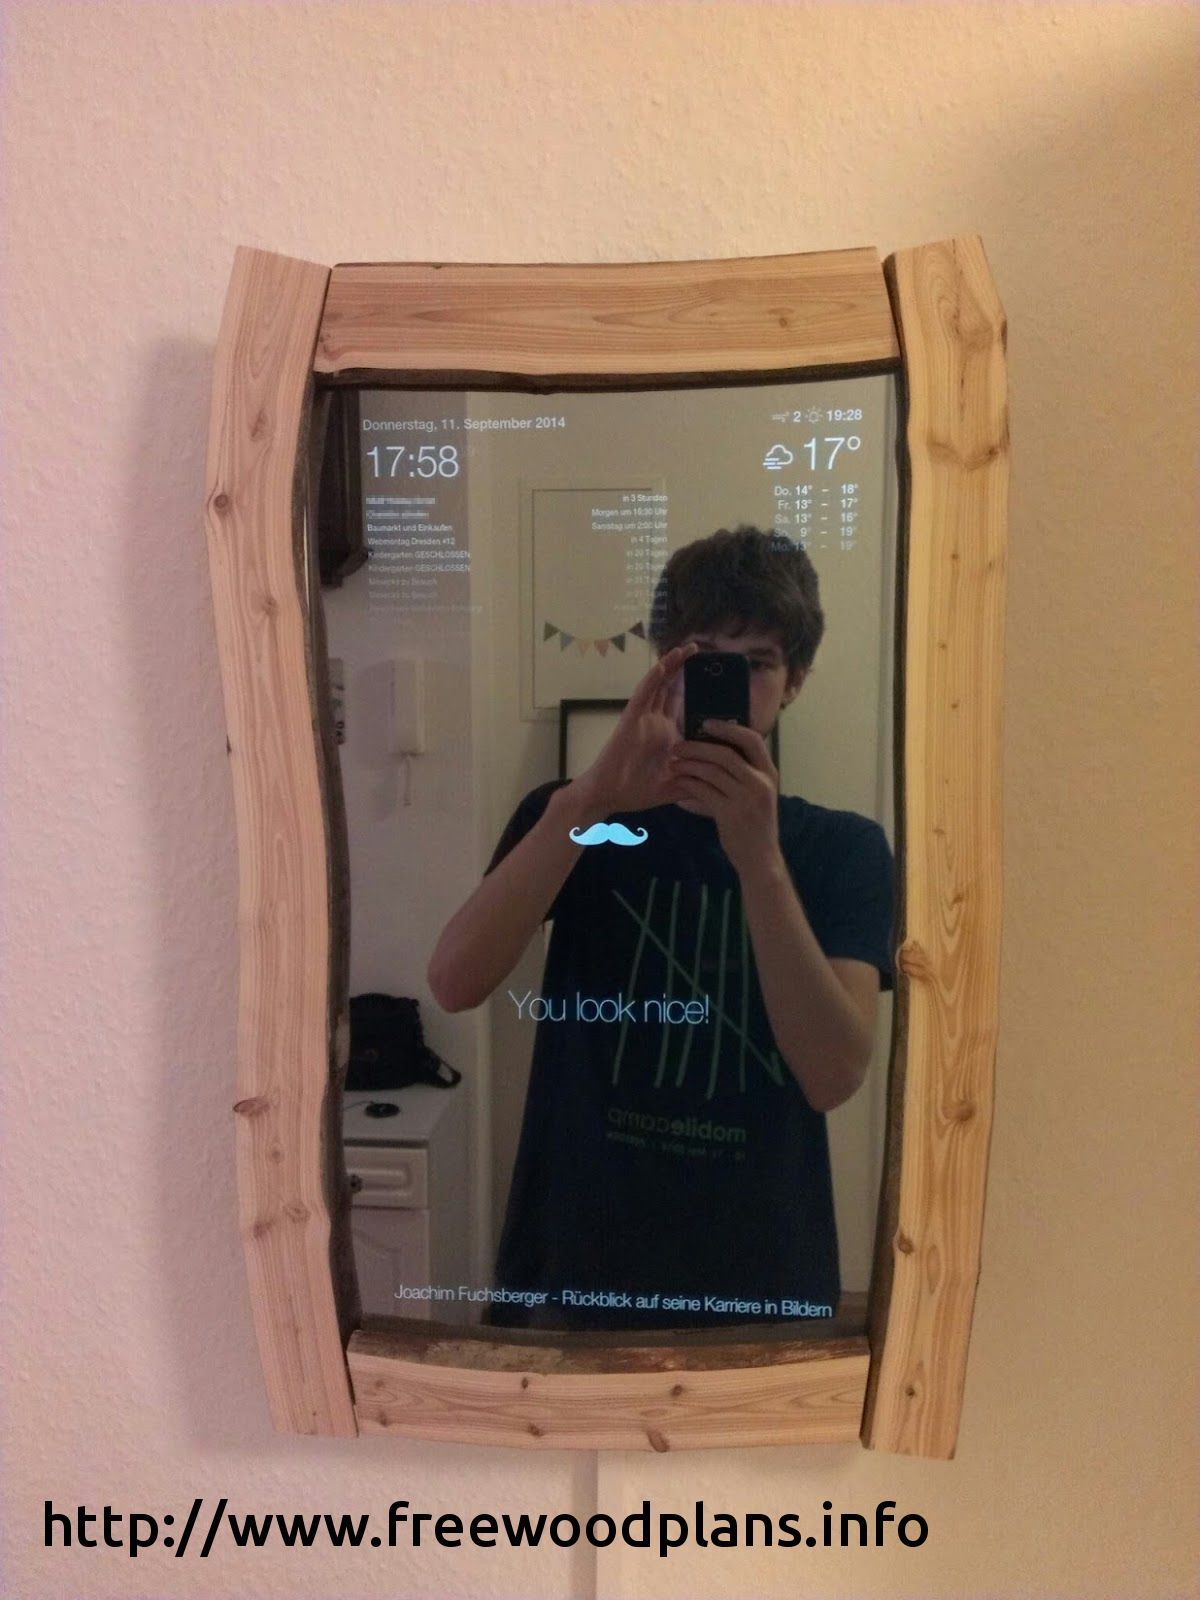 201 Metal Detector Wand Woodworking 2018 These Free Woodworking Plans Will Help Beginners All The Way Up To Expert Abi Magic Mirror Smart Mirror Computer Diy